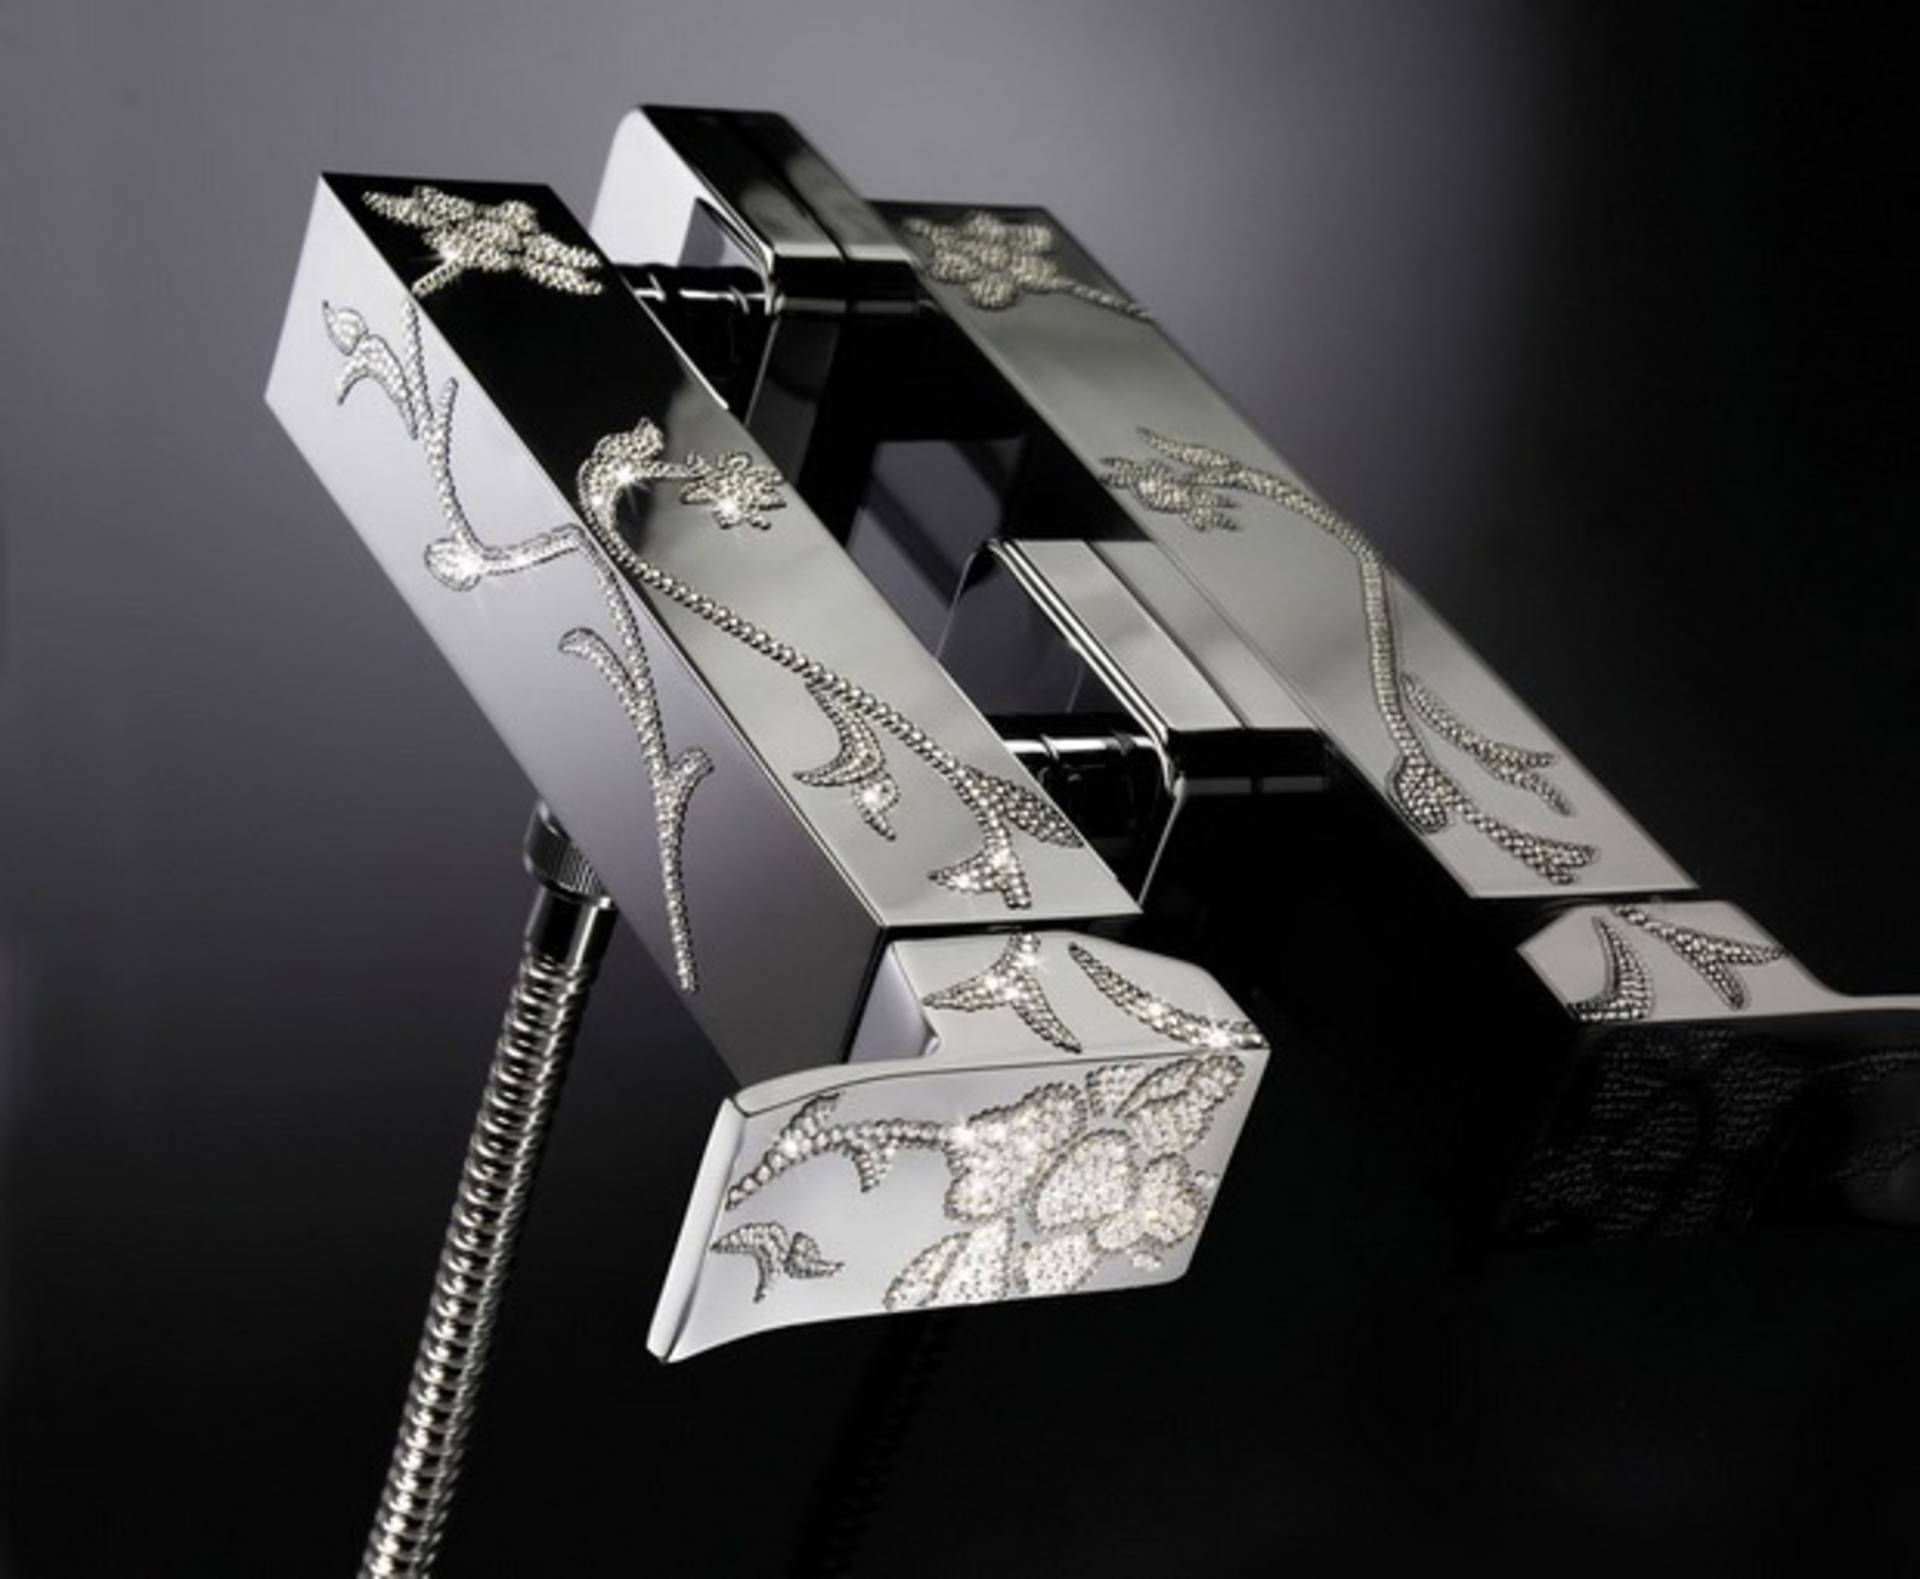 Extravagant Diamond Faucet by Maier - Home Reviews